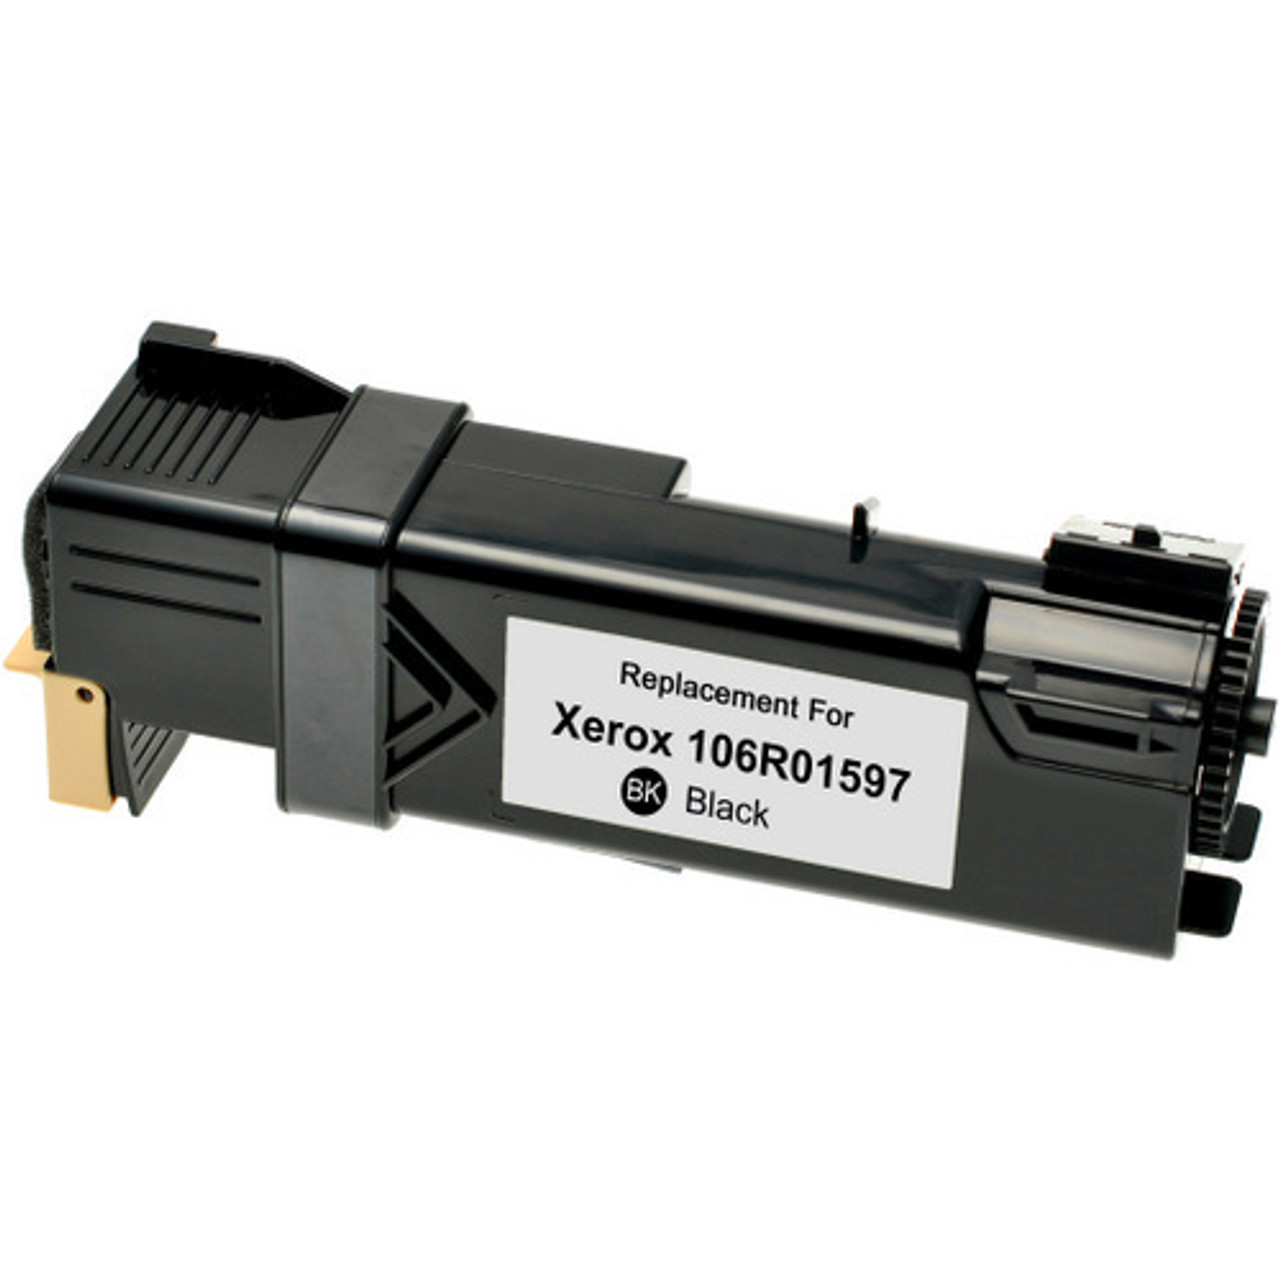 Xerox 106R01594 Compatible Cyan Toner Cartridge for Phaser 6500 WorkCentre 6505